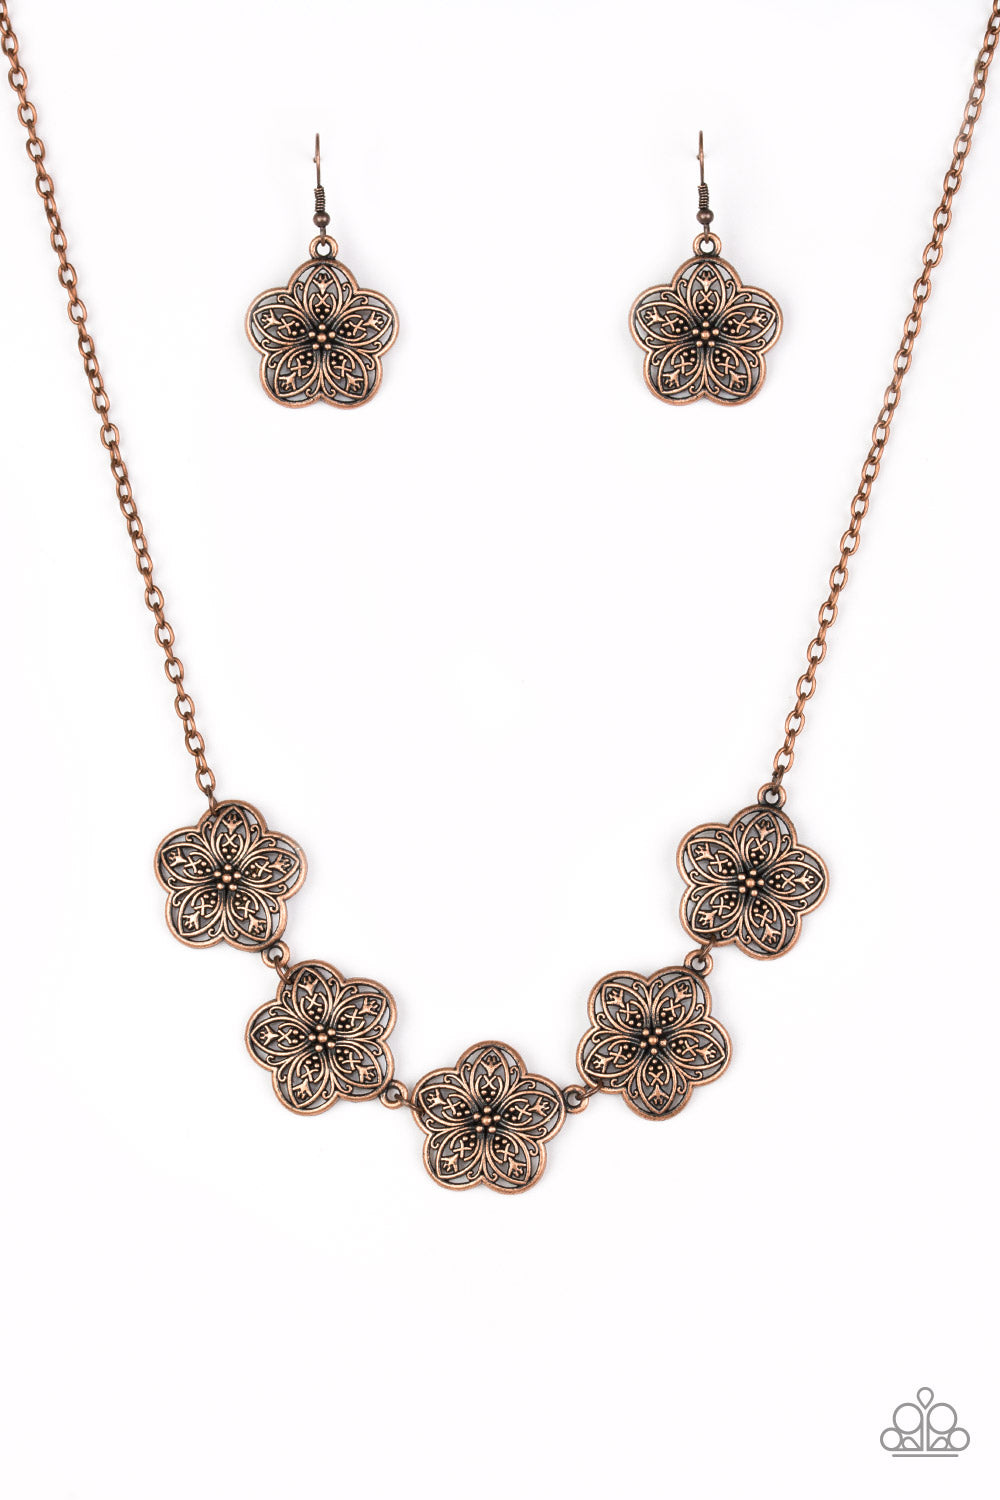 five-dollar-jewelry-garden-groove-copper-necklace-paparazzi-accessories